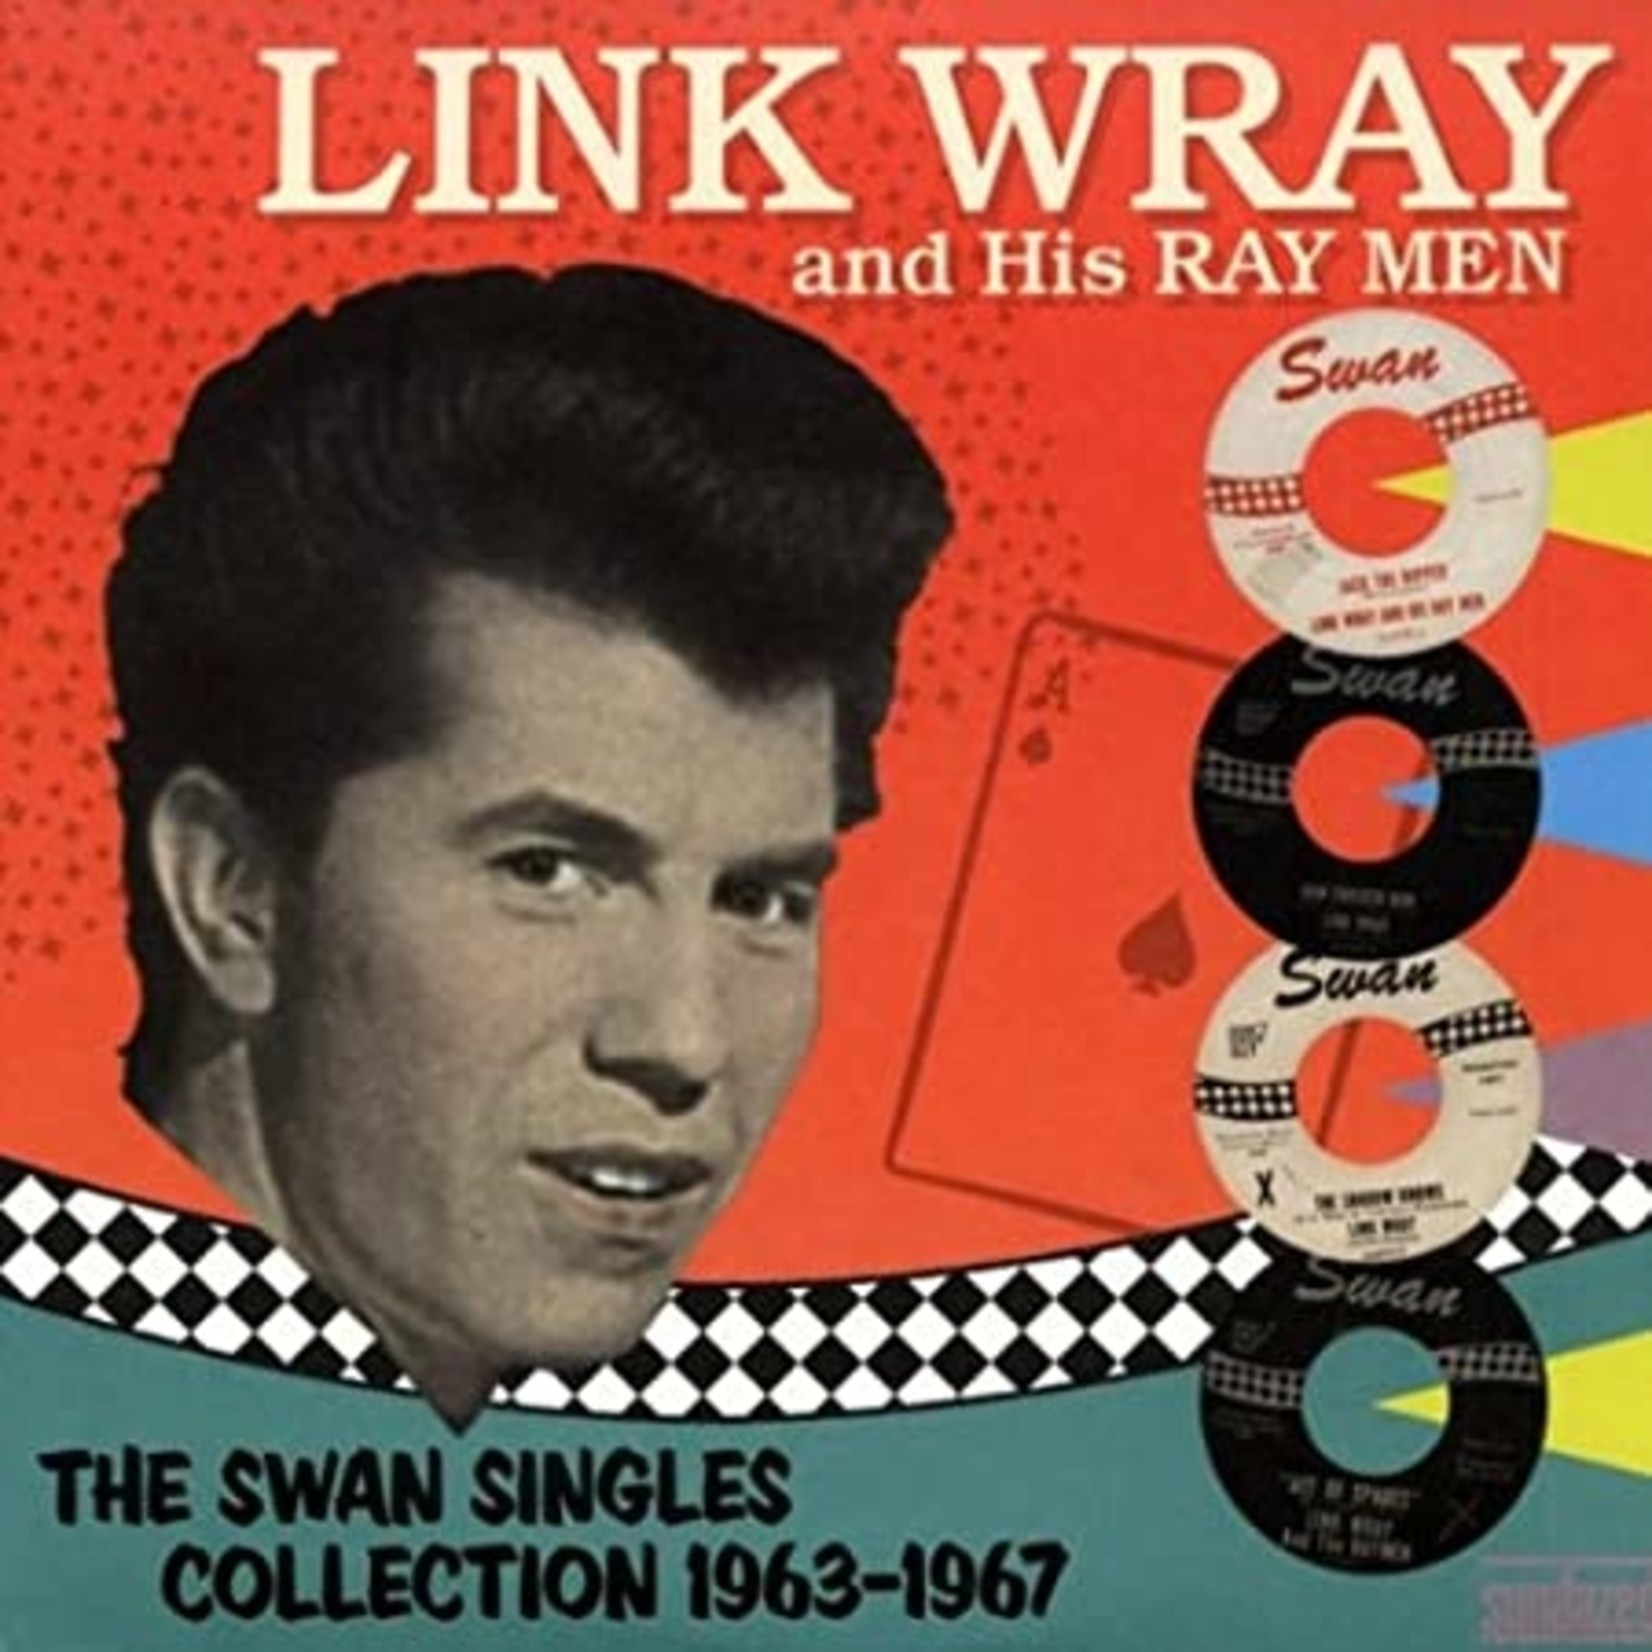 Vinyl Link Wray - The Swan Singles Collection 1963-1967. $$